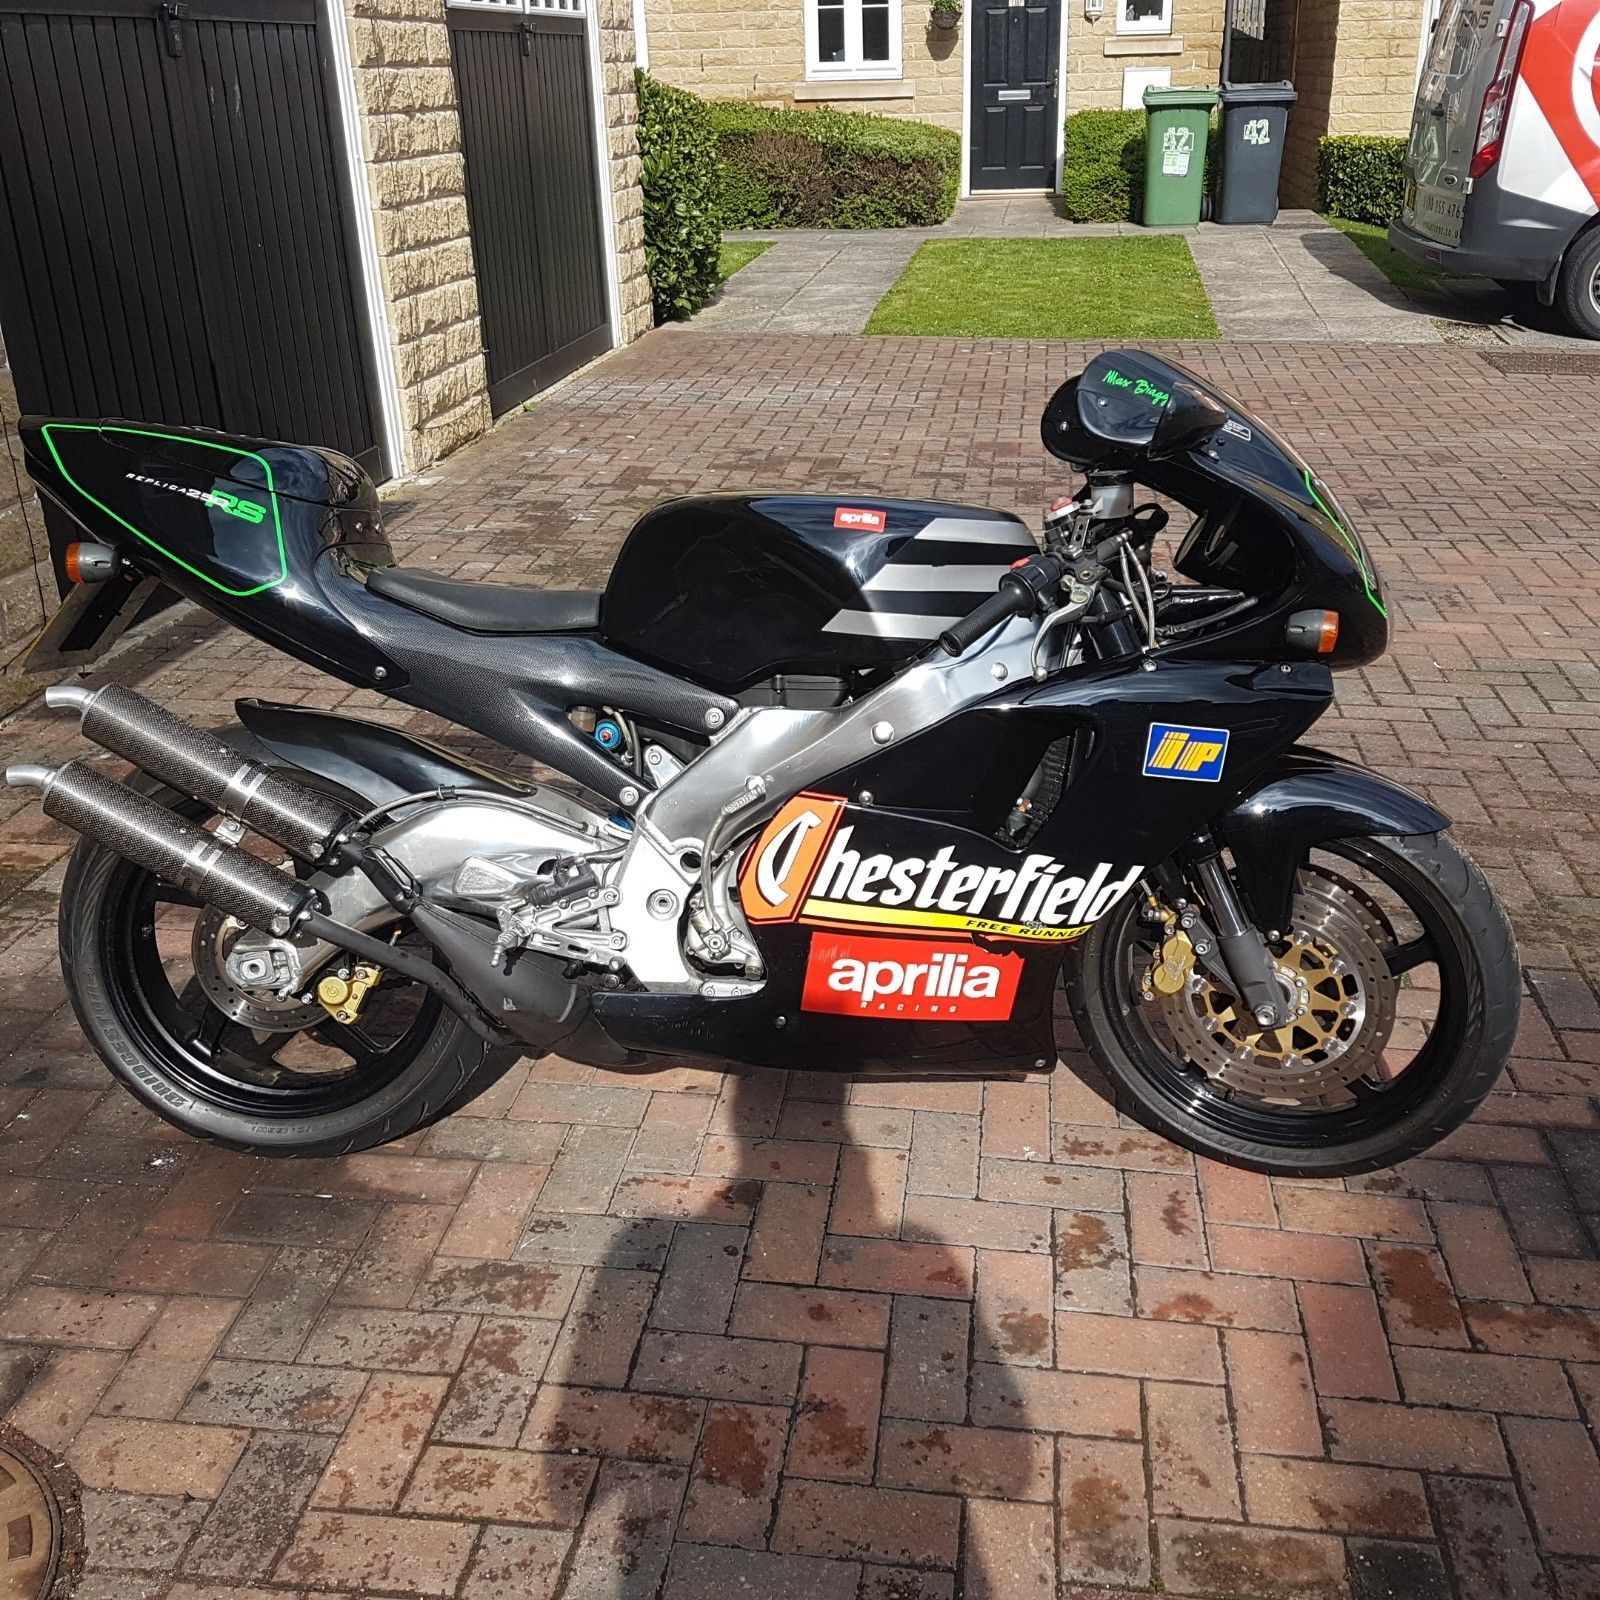 Aprilia RS250 Chesterfield Max Biaggi Race Rep Low Mileage ...